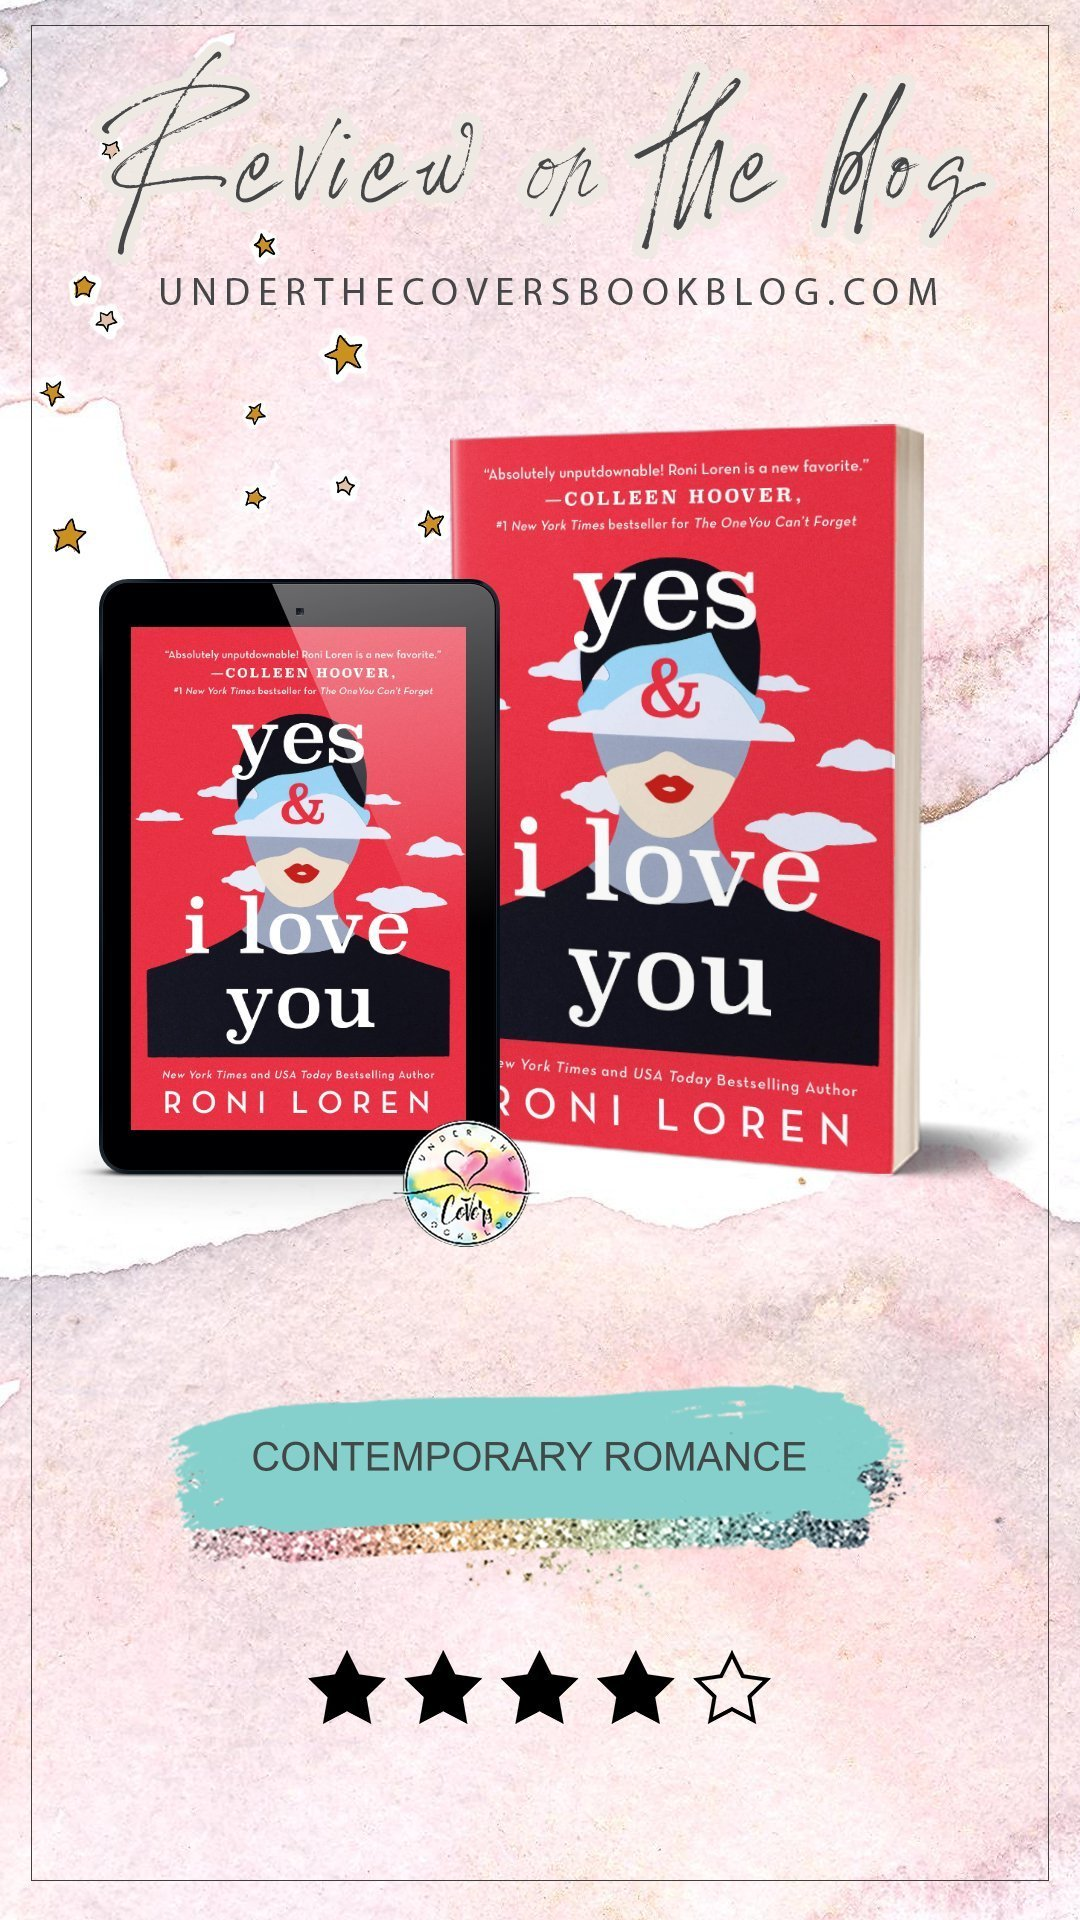 ARC Review: Yes & I Love You by Roni Loren